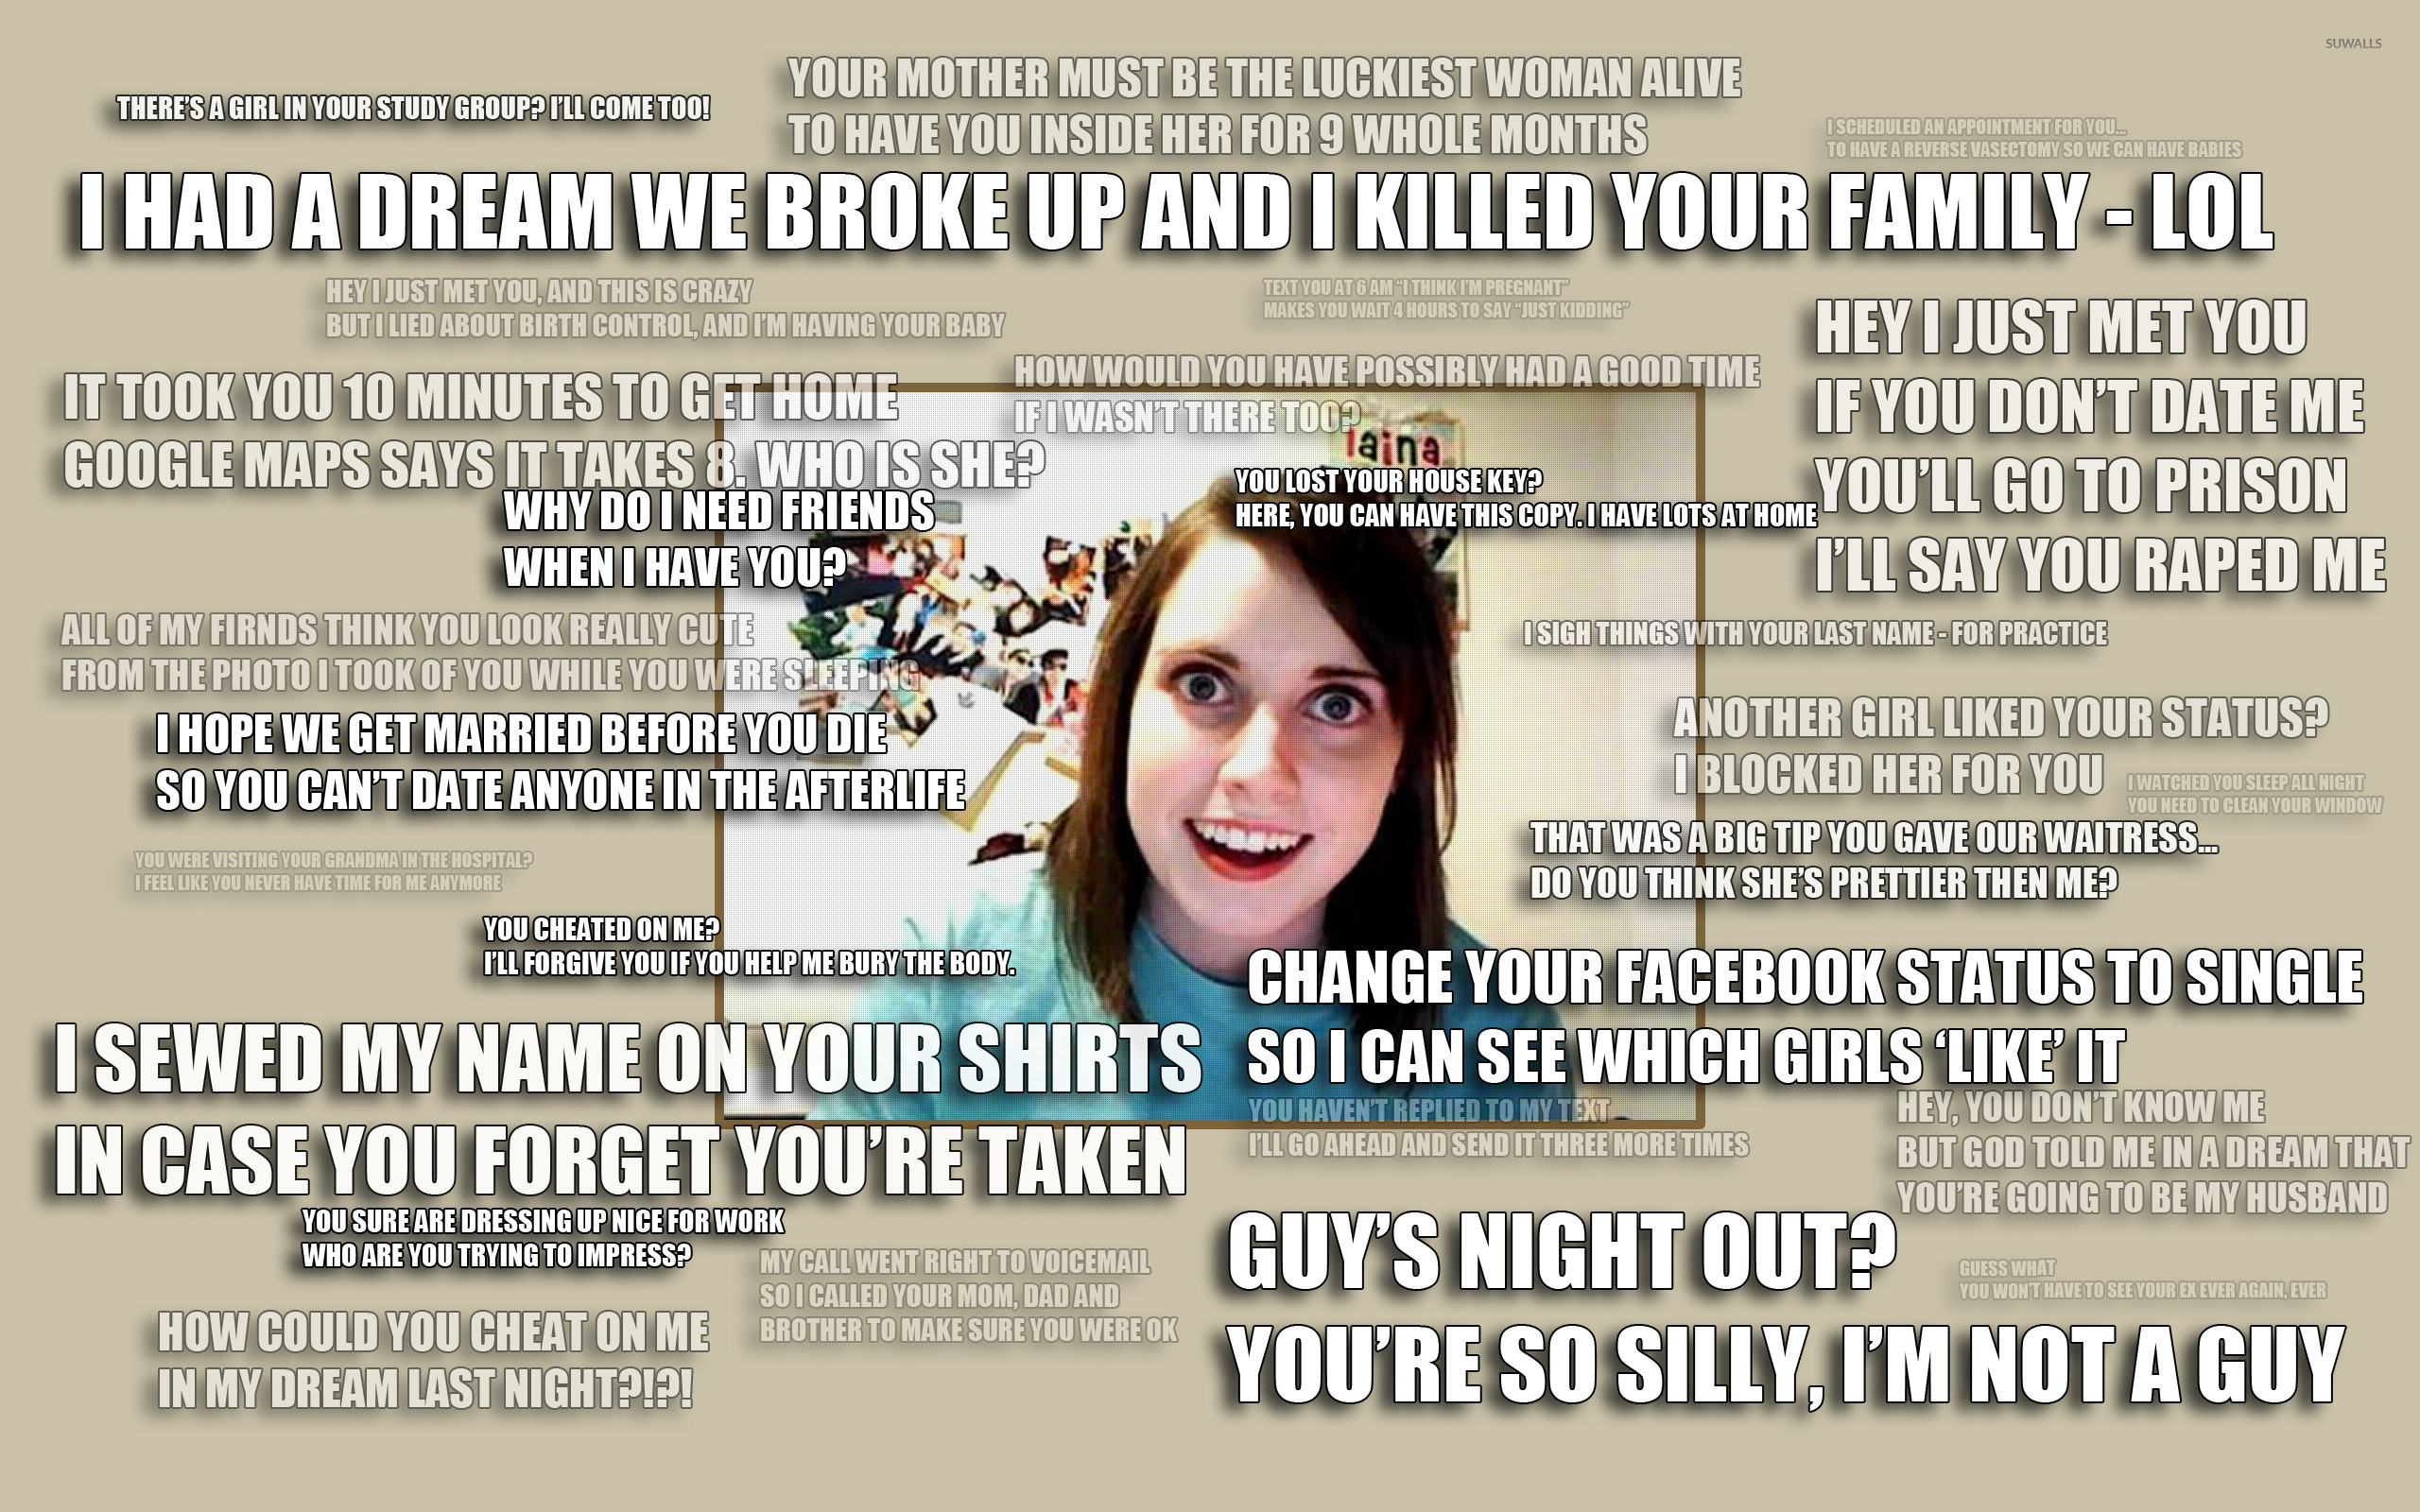 overly attached girlfriend 14944 2560x1600 overly attached girlfriend wallpaper meme wallpapers 14944